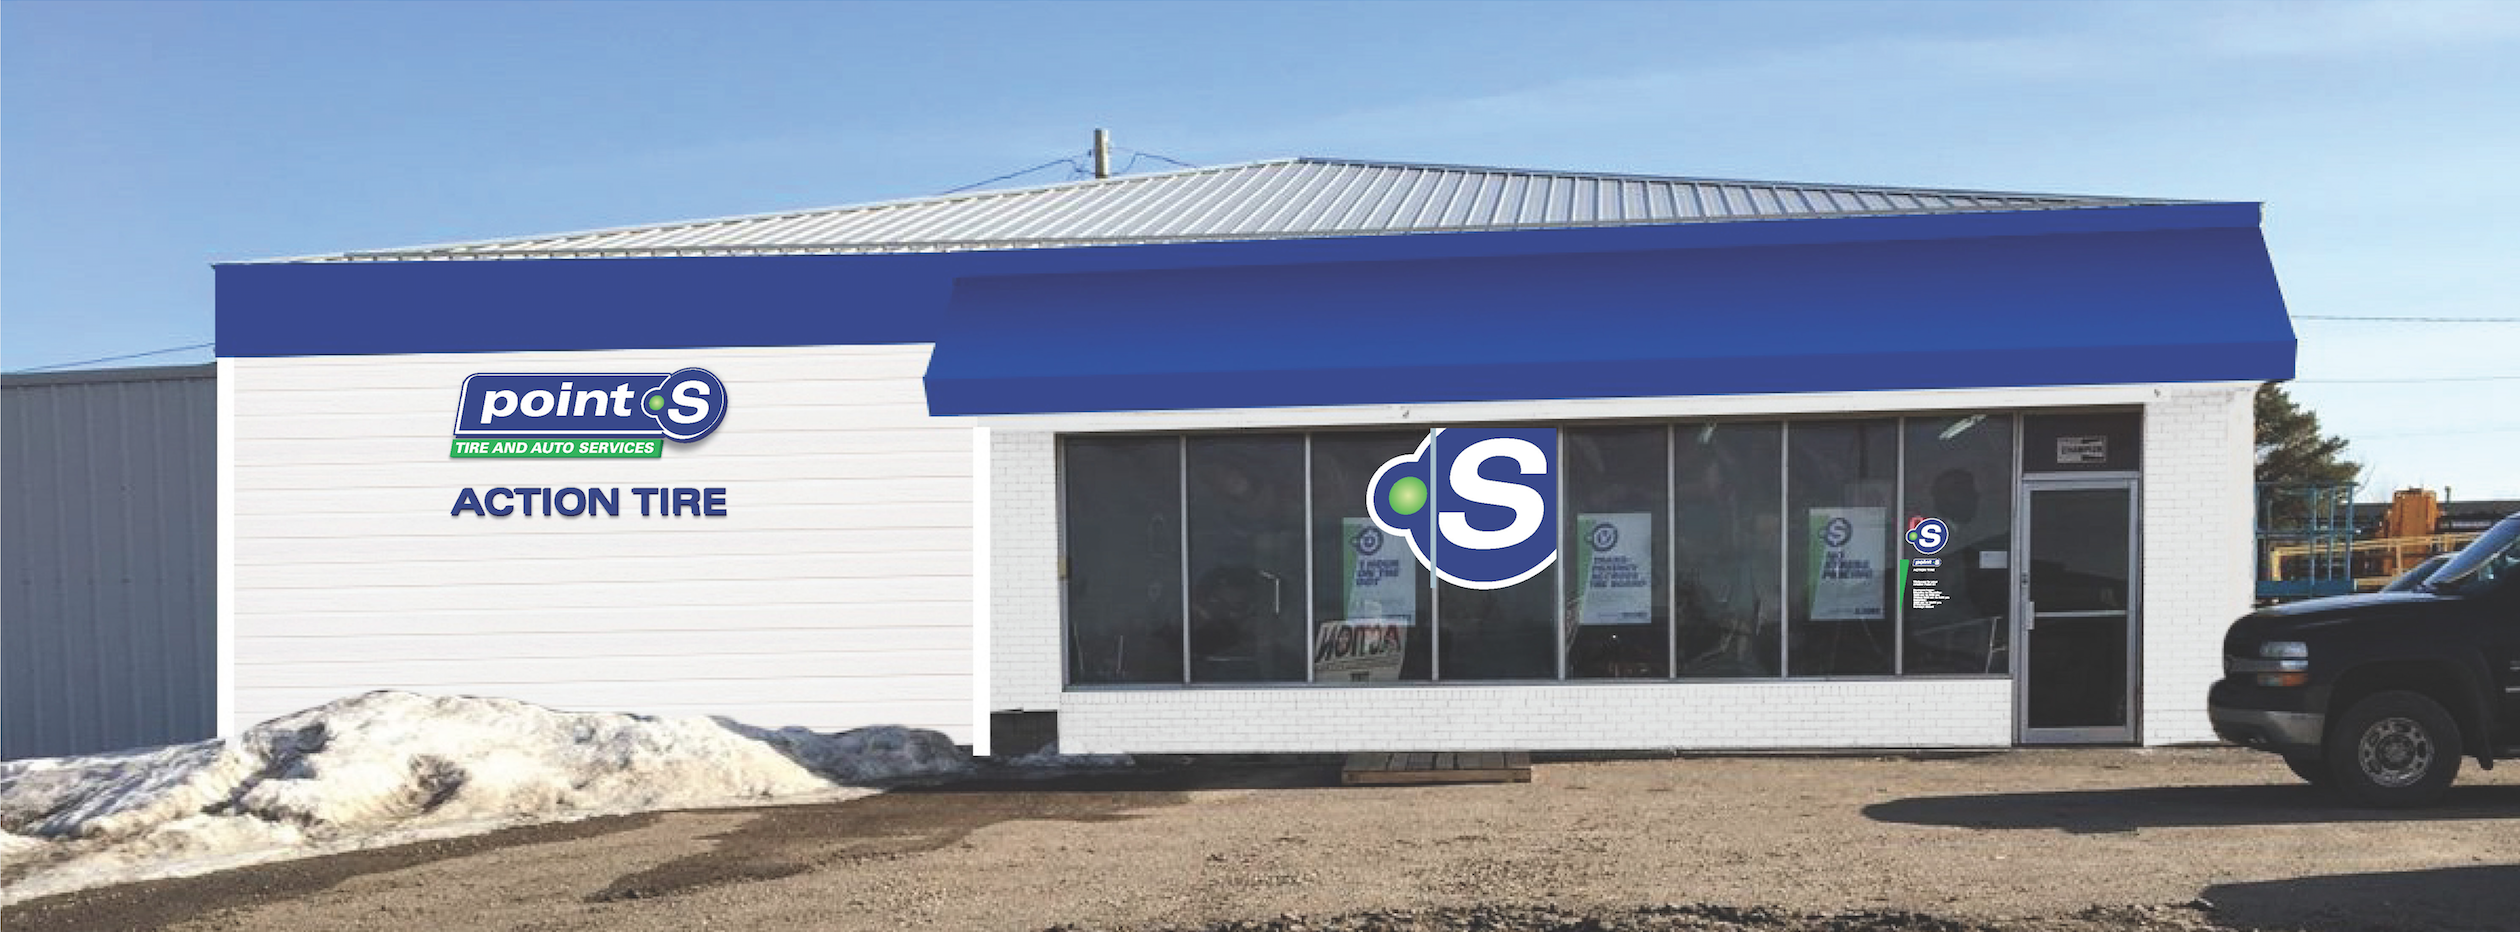 Two Tire Dealers Join Point S in Canada